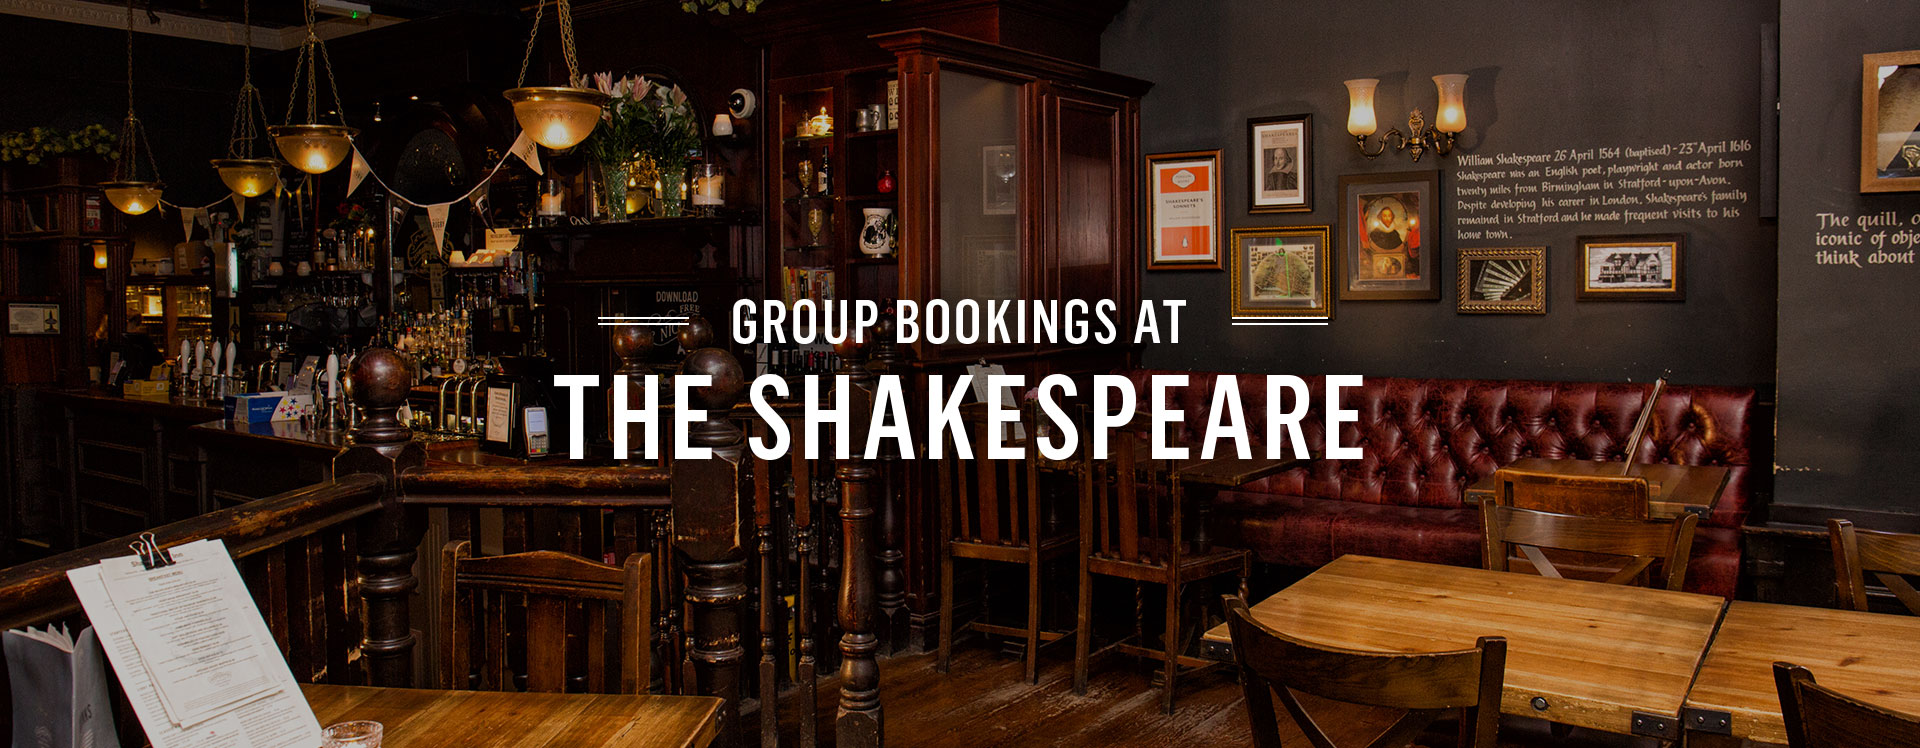 Group Bookings at The Shakespeare